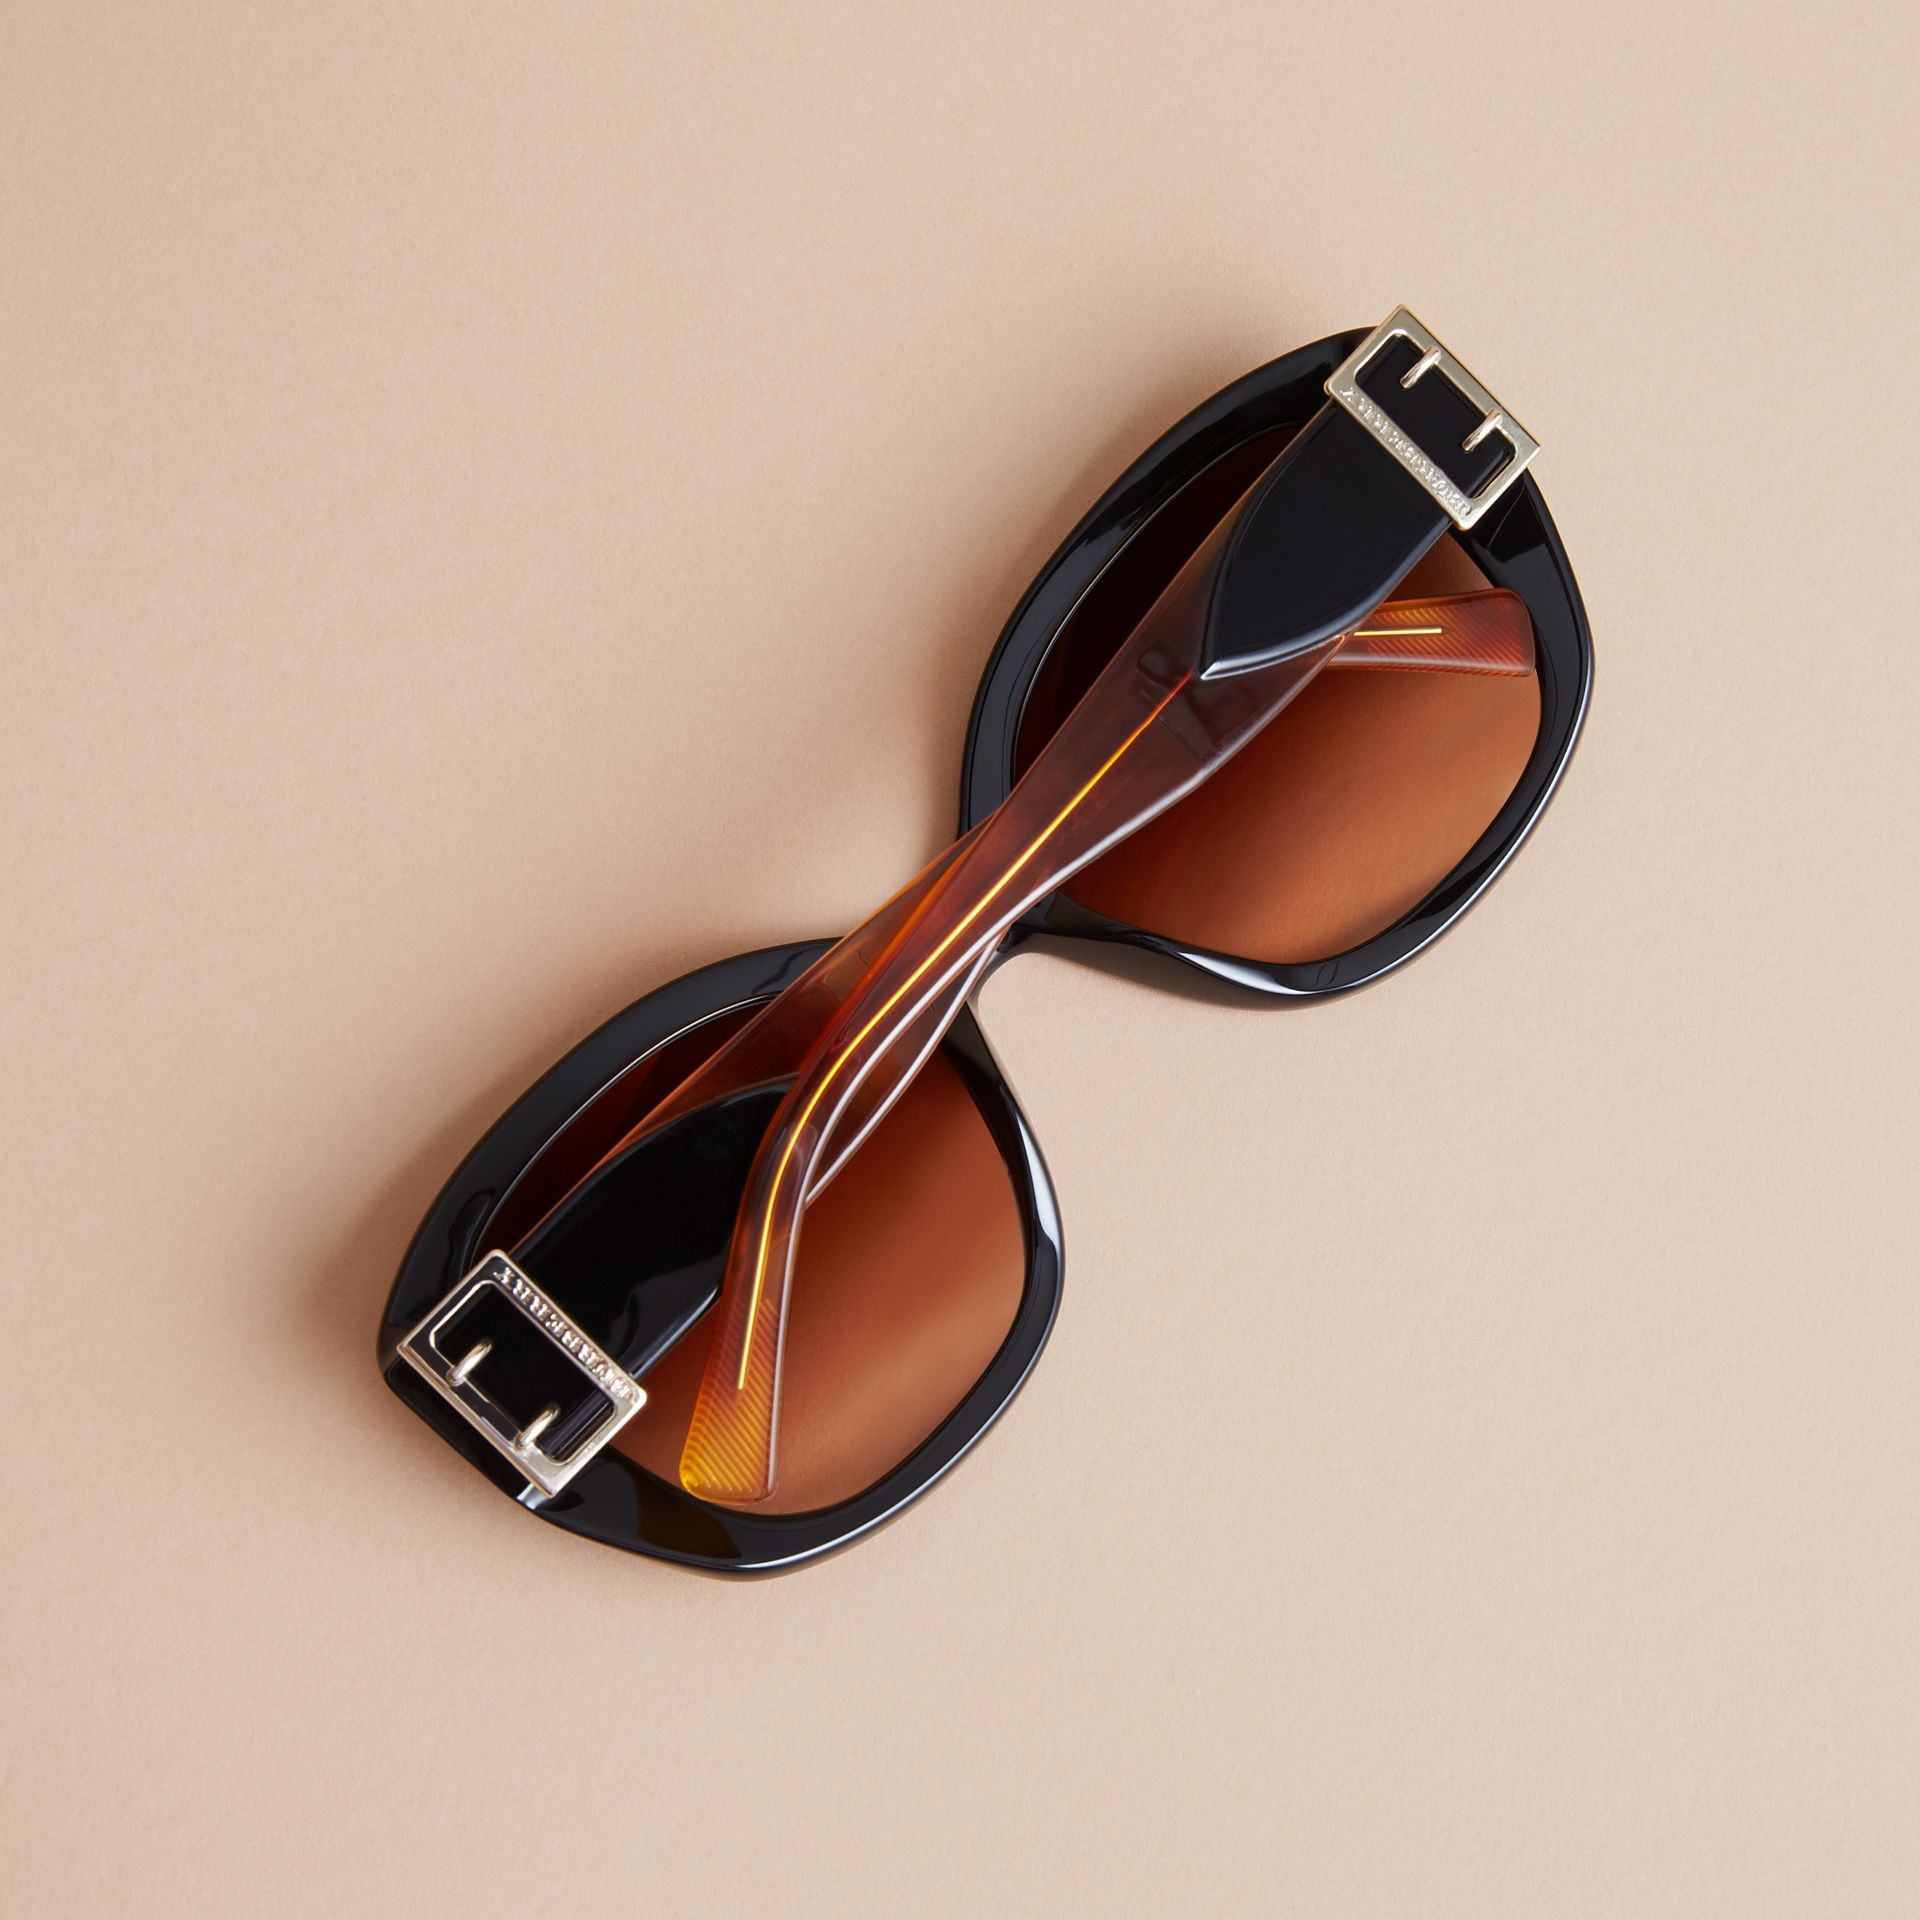 Buckle Detail Oversize Square Frame Sunglasses in Black - Women | Burberry - gallery image 3